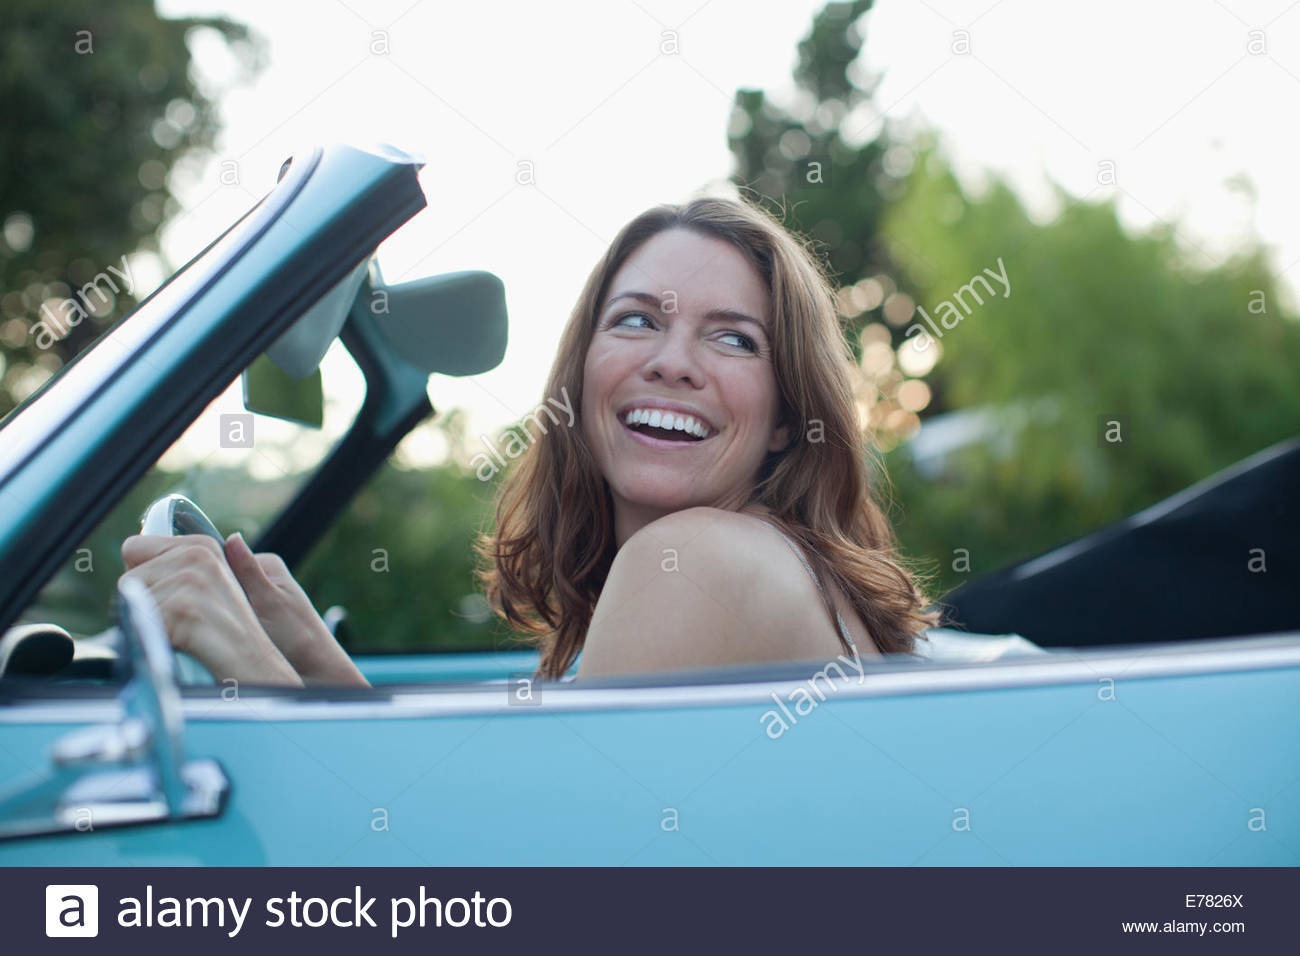 Smiling woman sitting in convertible - Stock Image